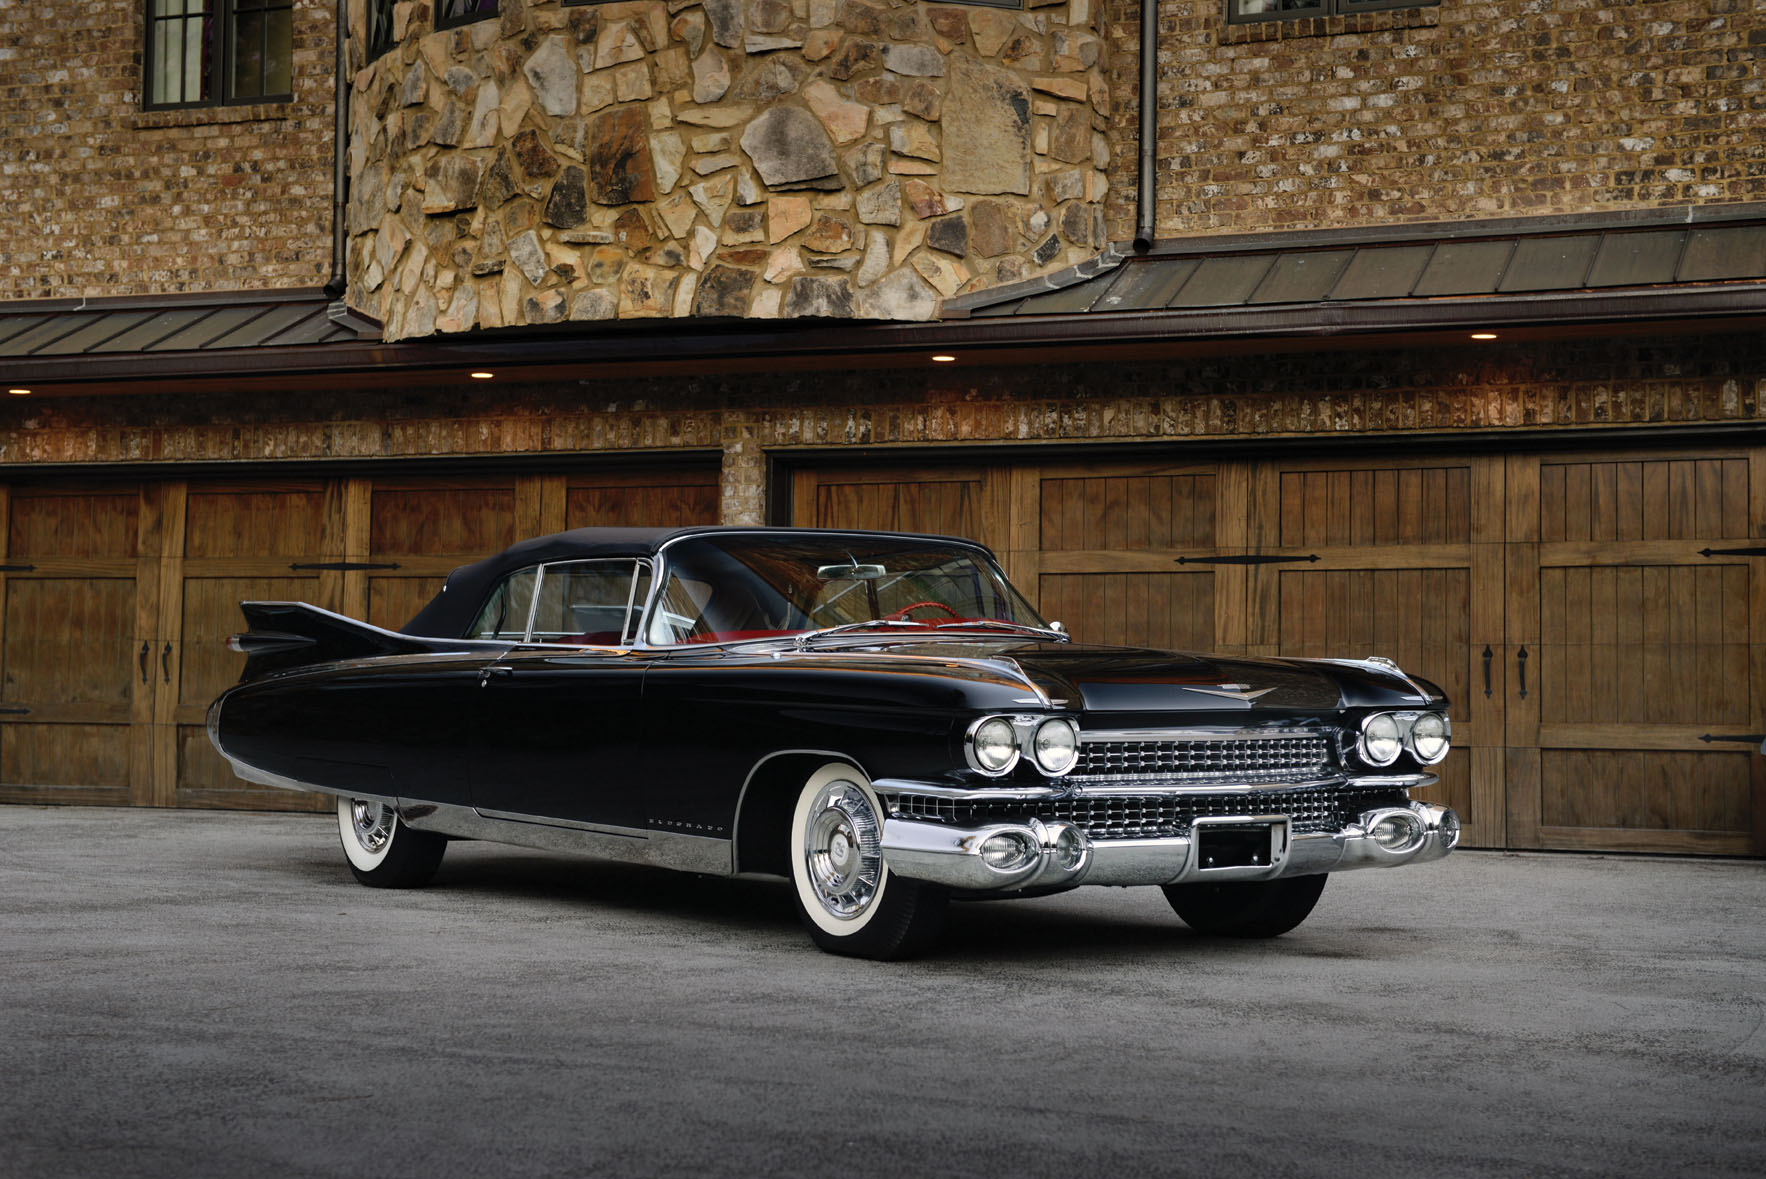 Online Car Parts >> Tuning Cadillac Eldorado Convertible sedan 1959 online, accessories and spare parts for tuning ...